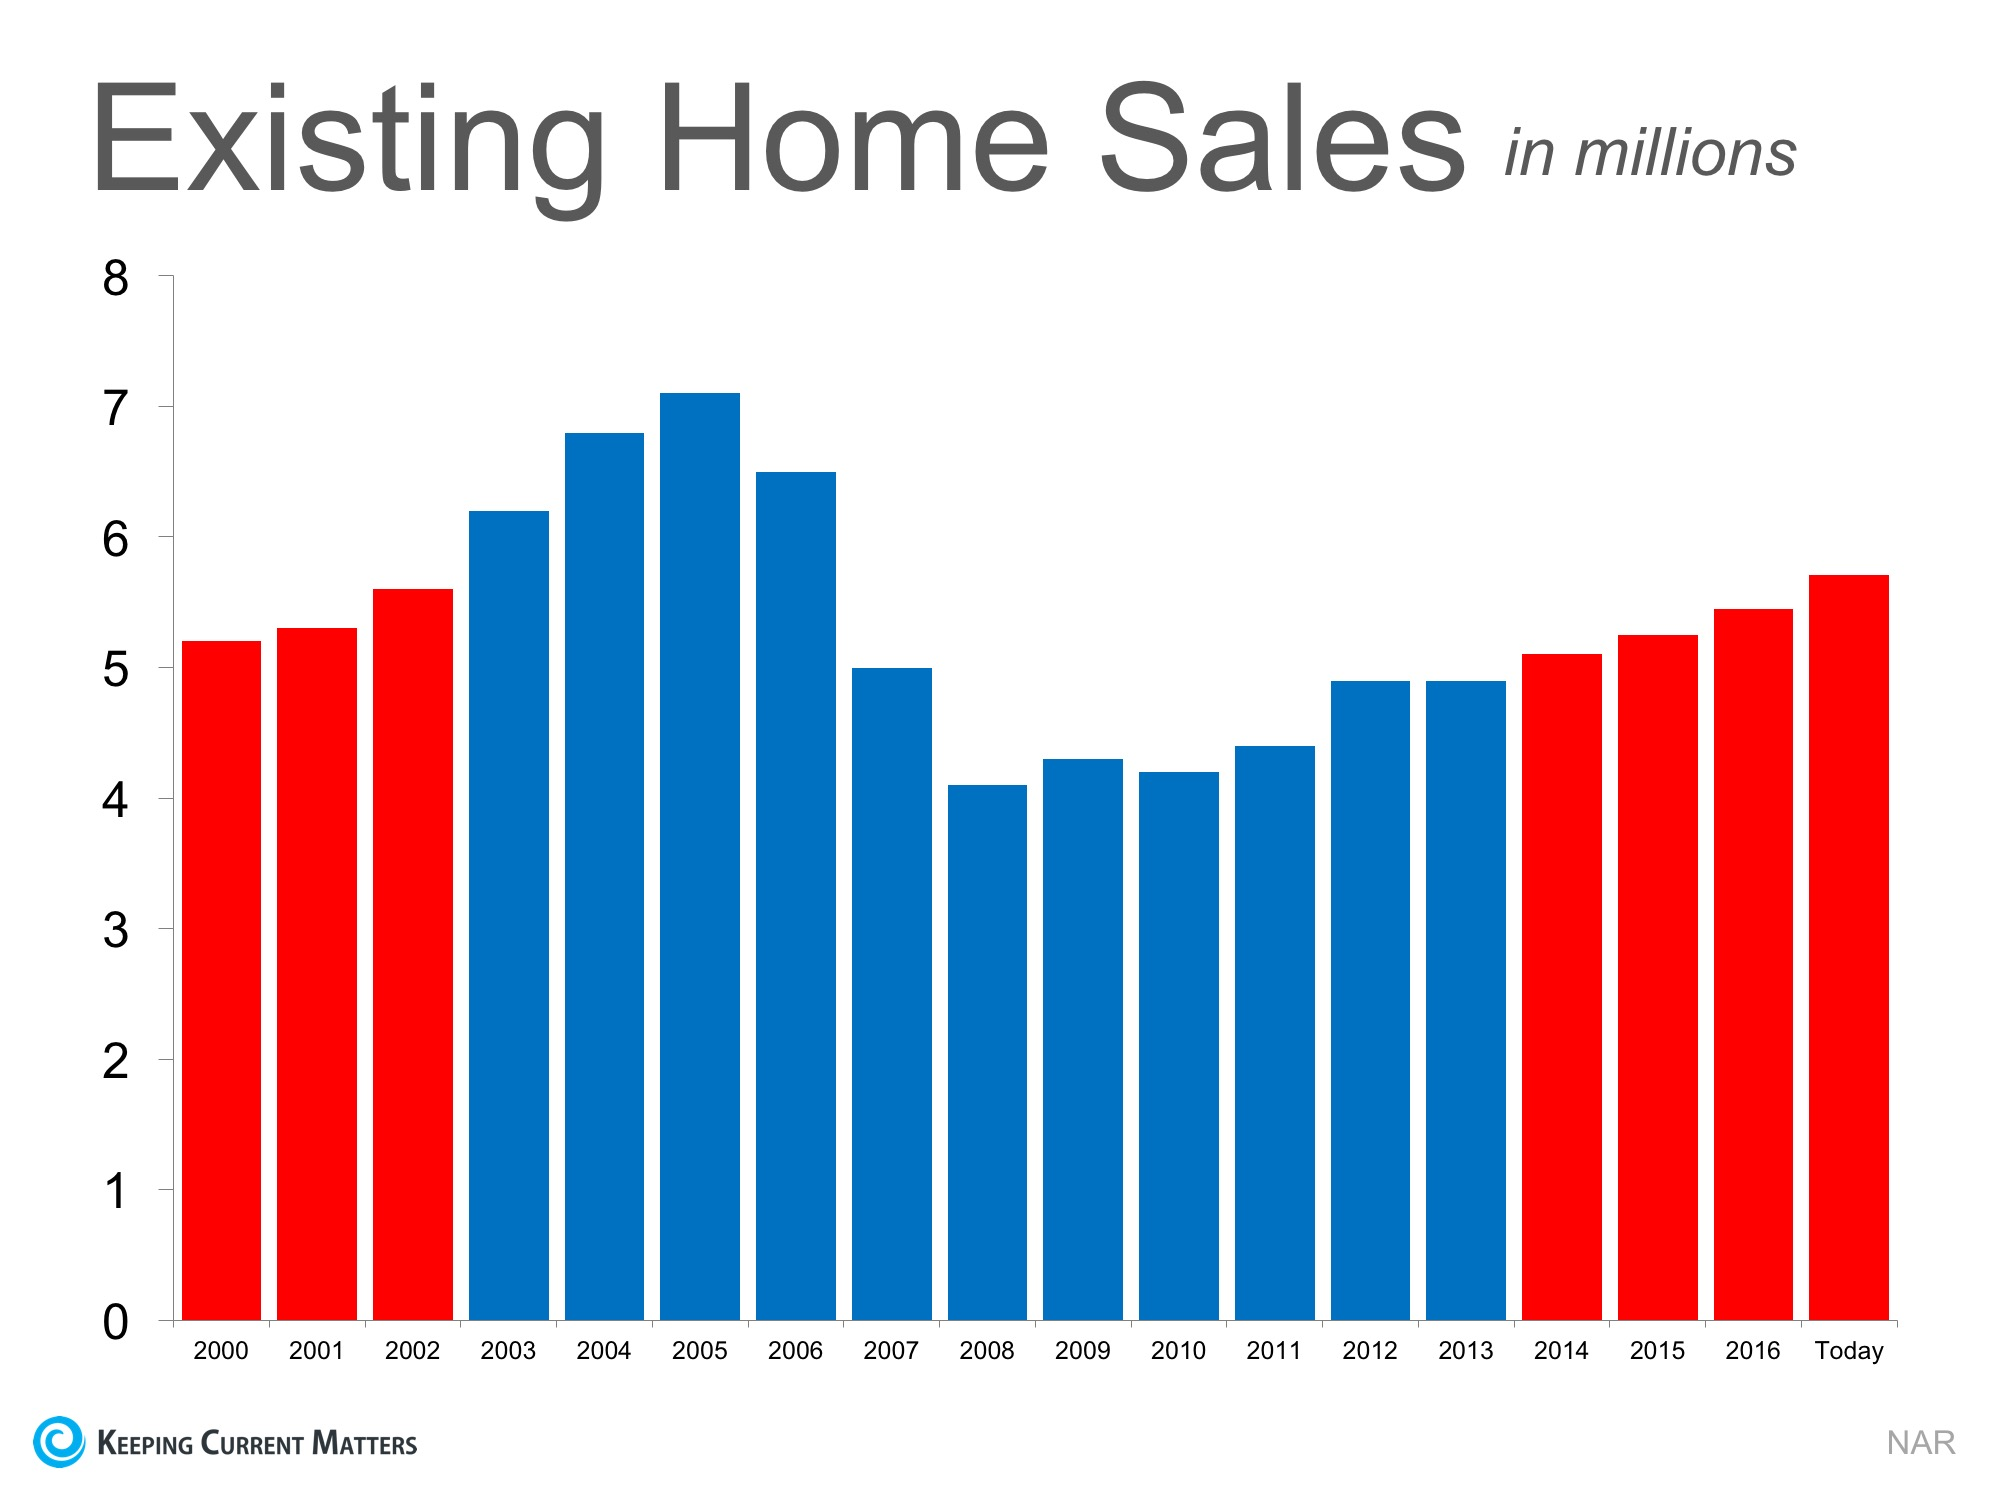 Is the Current Pace of Home Sales Maintainable? | Keeping Current Matters